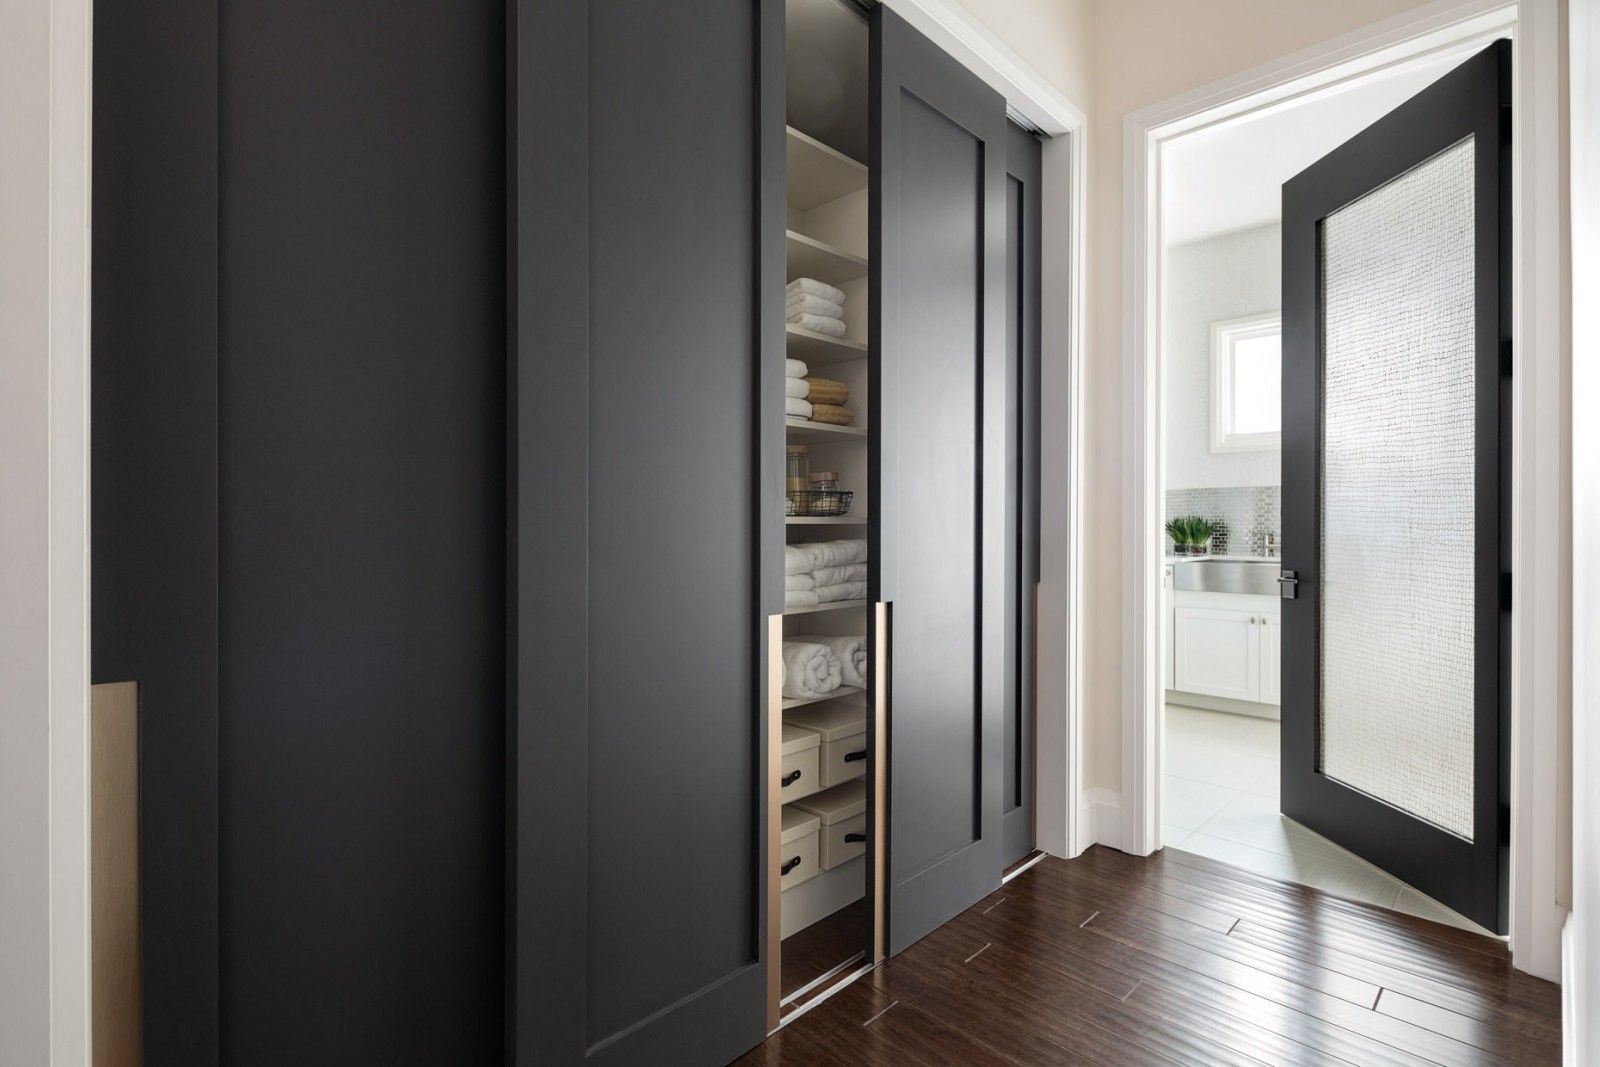 Modern Closet Types & Variants for Hallway Interior with Photos. Gorgeous dark gray matted facades in the modern design